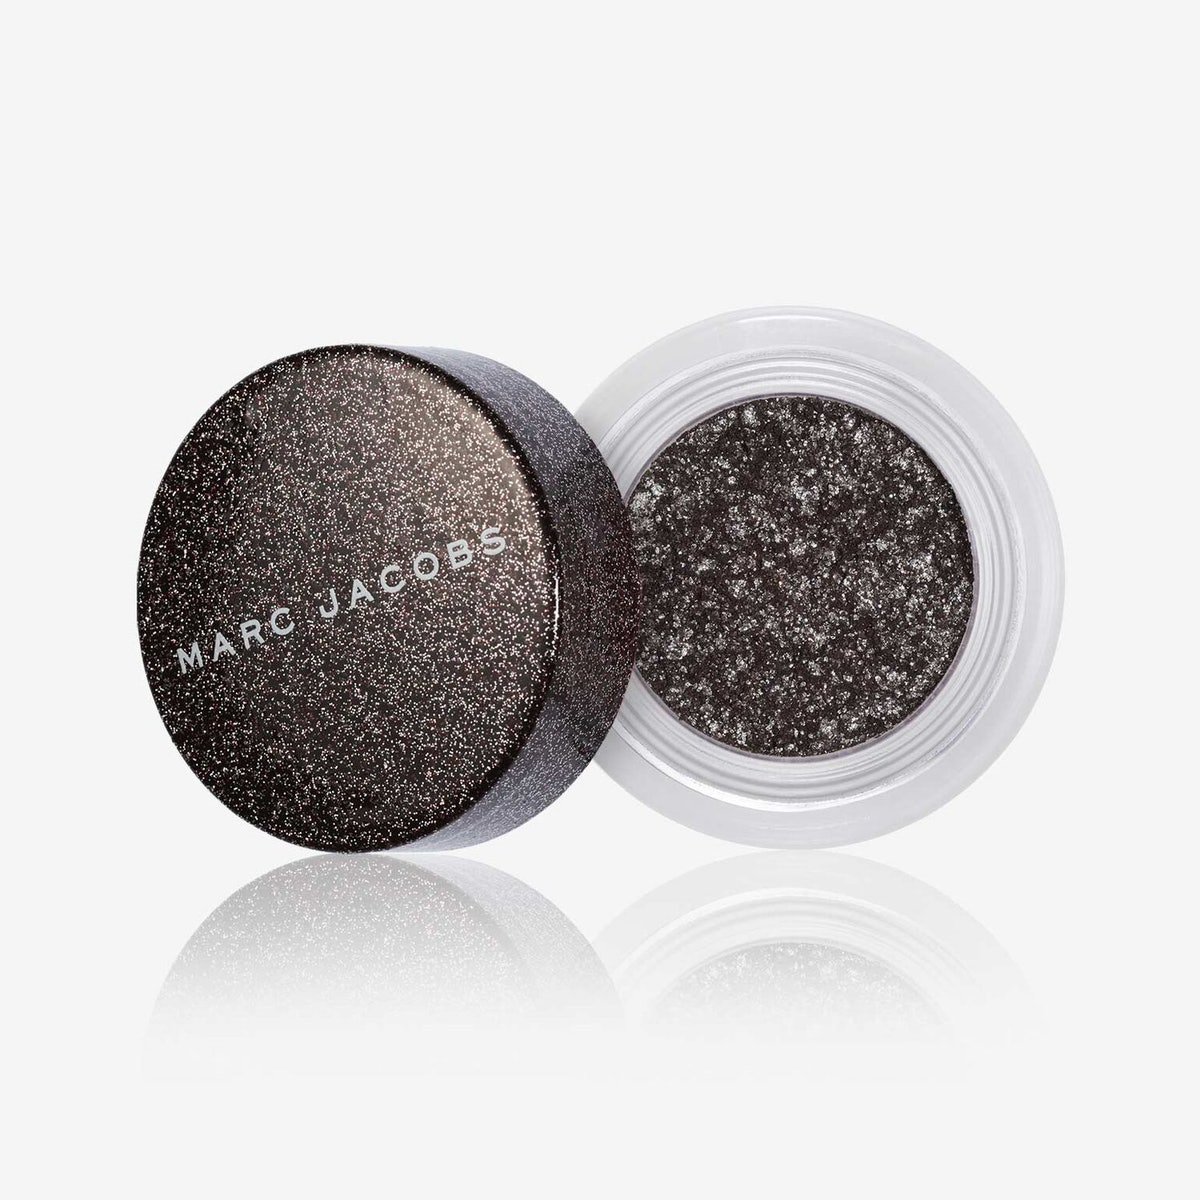 See-Quins Glam Glitter Eyeshadow in Glam Rock 96